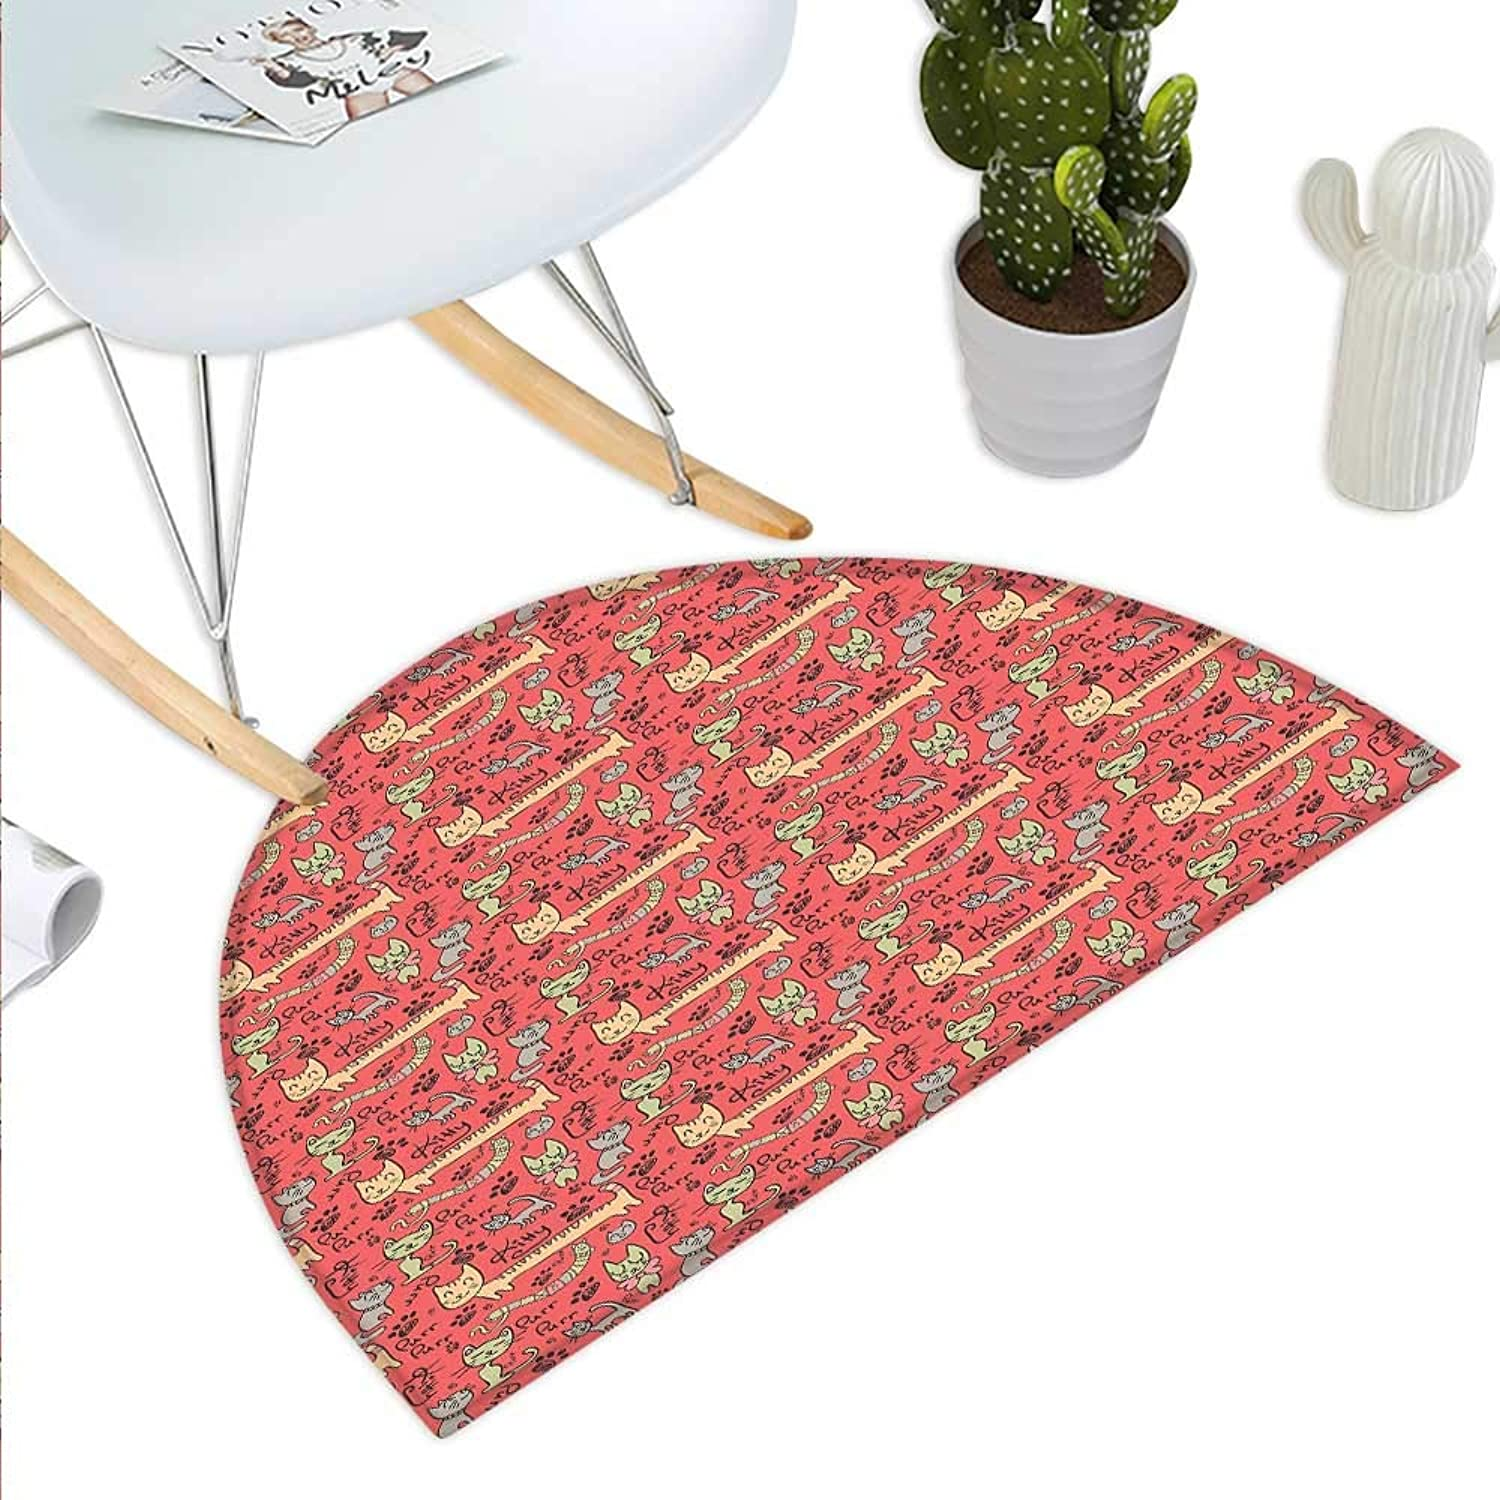 Cat Semicircle Doormat Pattern with Cute Hand Drawn Style Cats Purr Purr Kitty Paws Bow Ties Adorable Doodle Halfmoon doormats H 43.3  xD 64.9  Multicolor